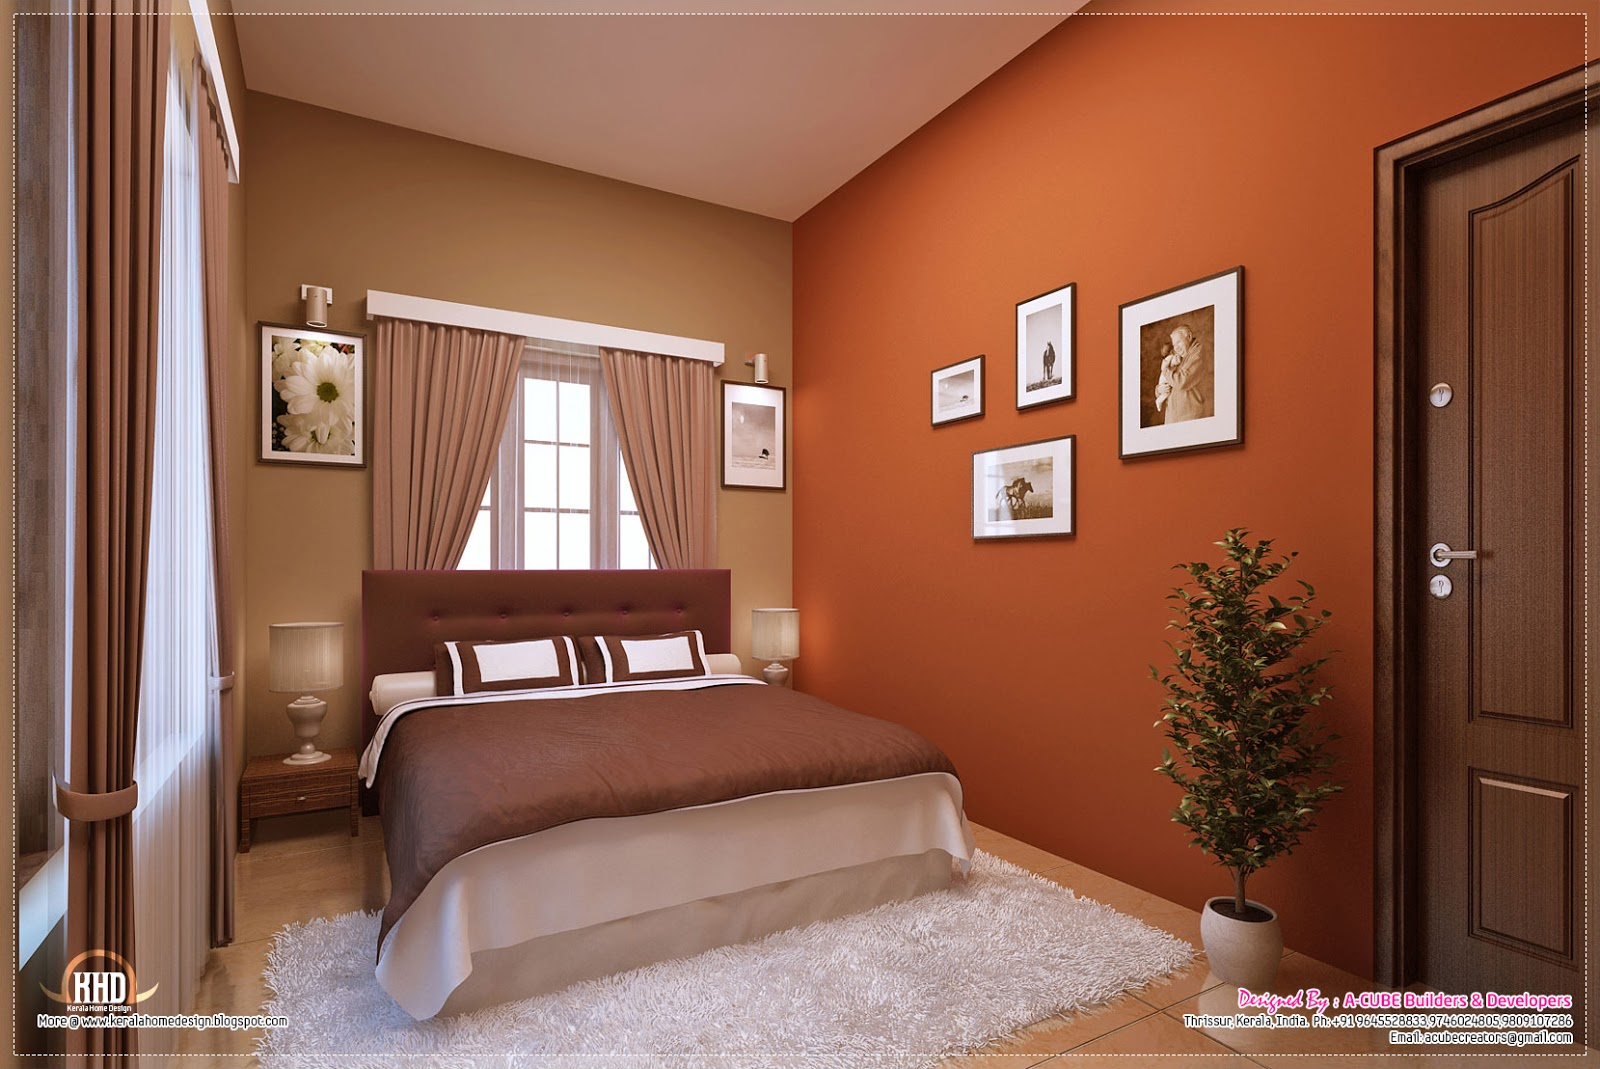 Awesome interior decoration ideas kerala home design and for Bed styles for small rooms